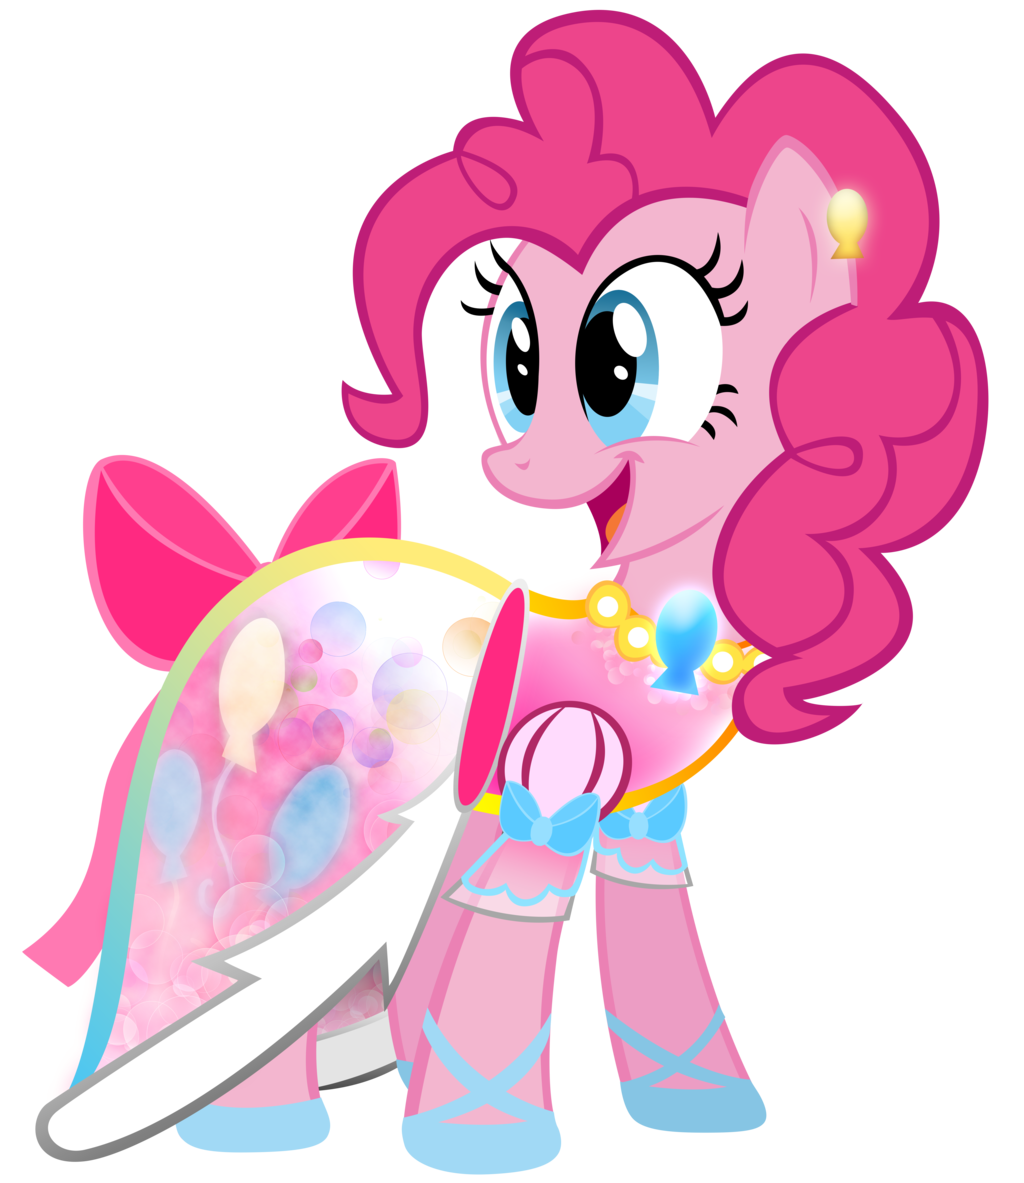 Image pinkie pie and fluttershy flying png my little pony fan - Pinkie Pie The Mane Dress Project By Kibbiethegreat On Deviantart Find This Pin And More On Mlp